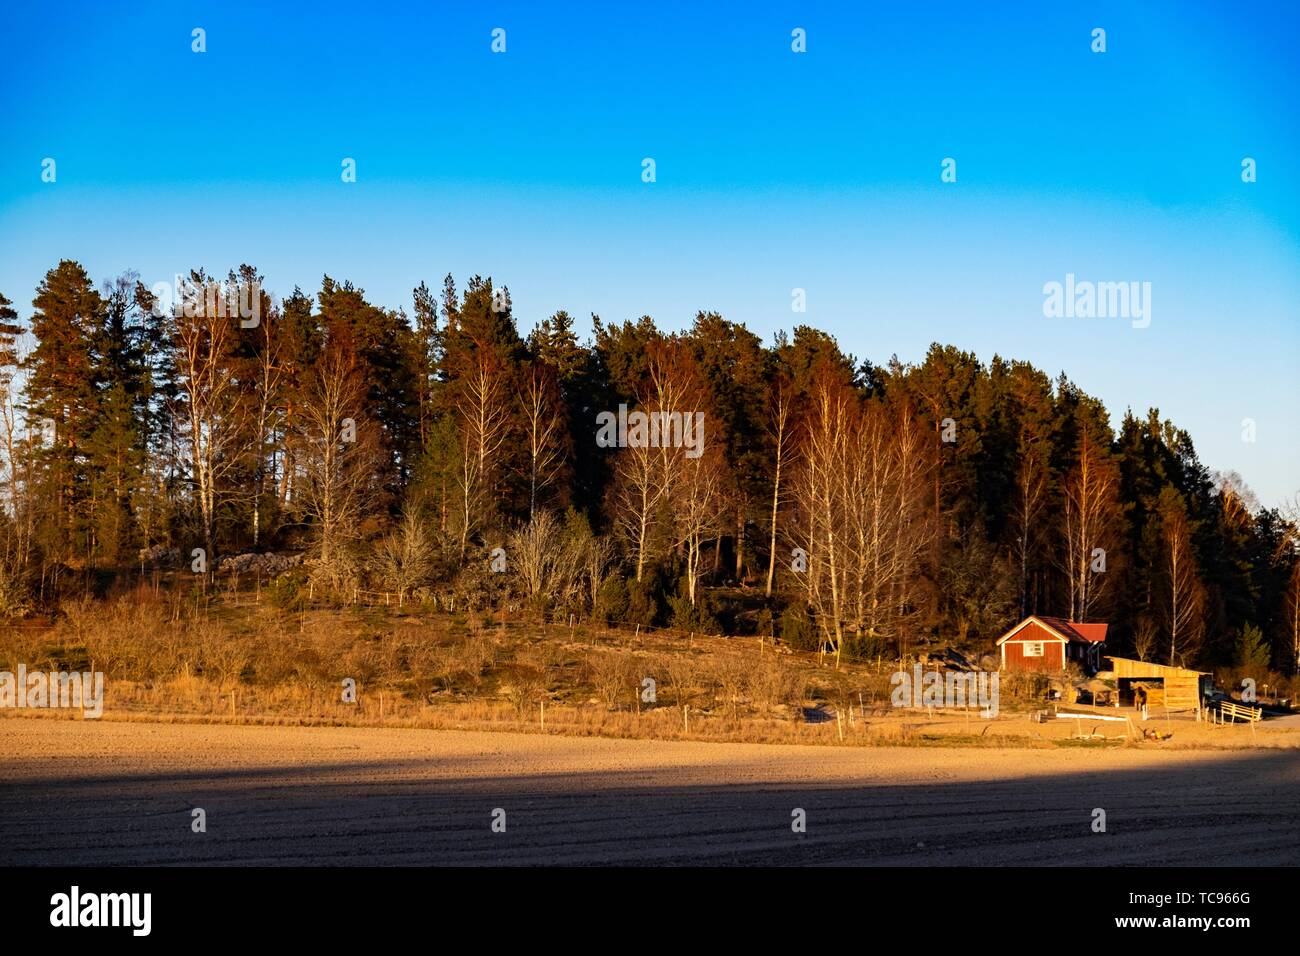 Cabin in the woods in Sweden. - Stock Image